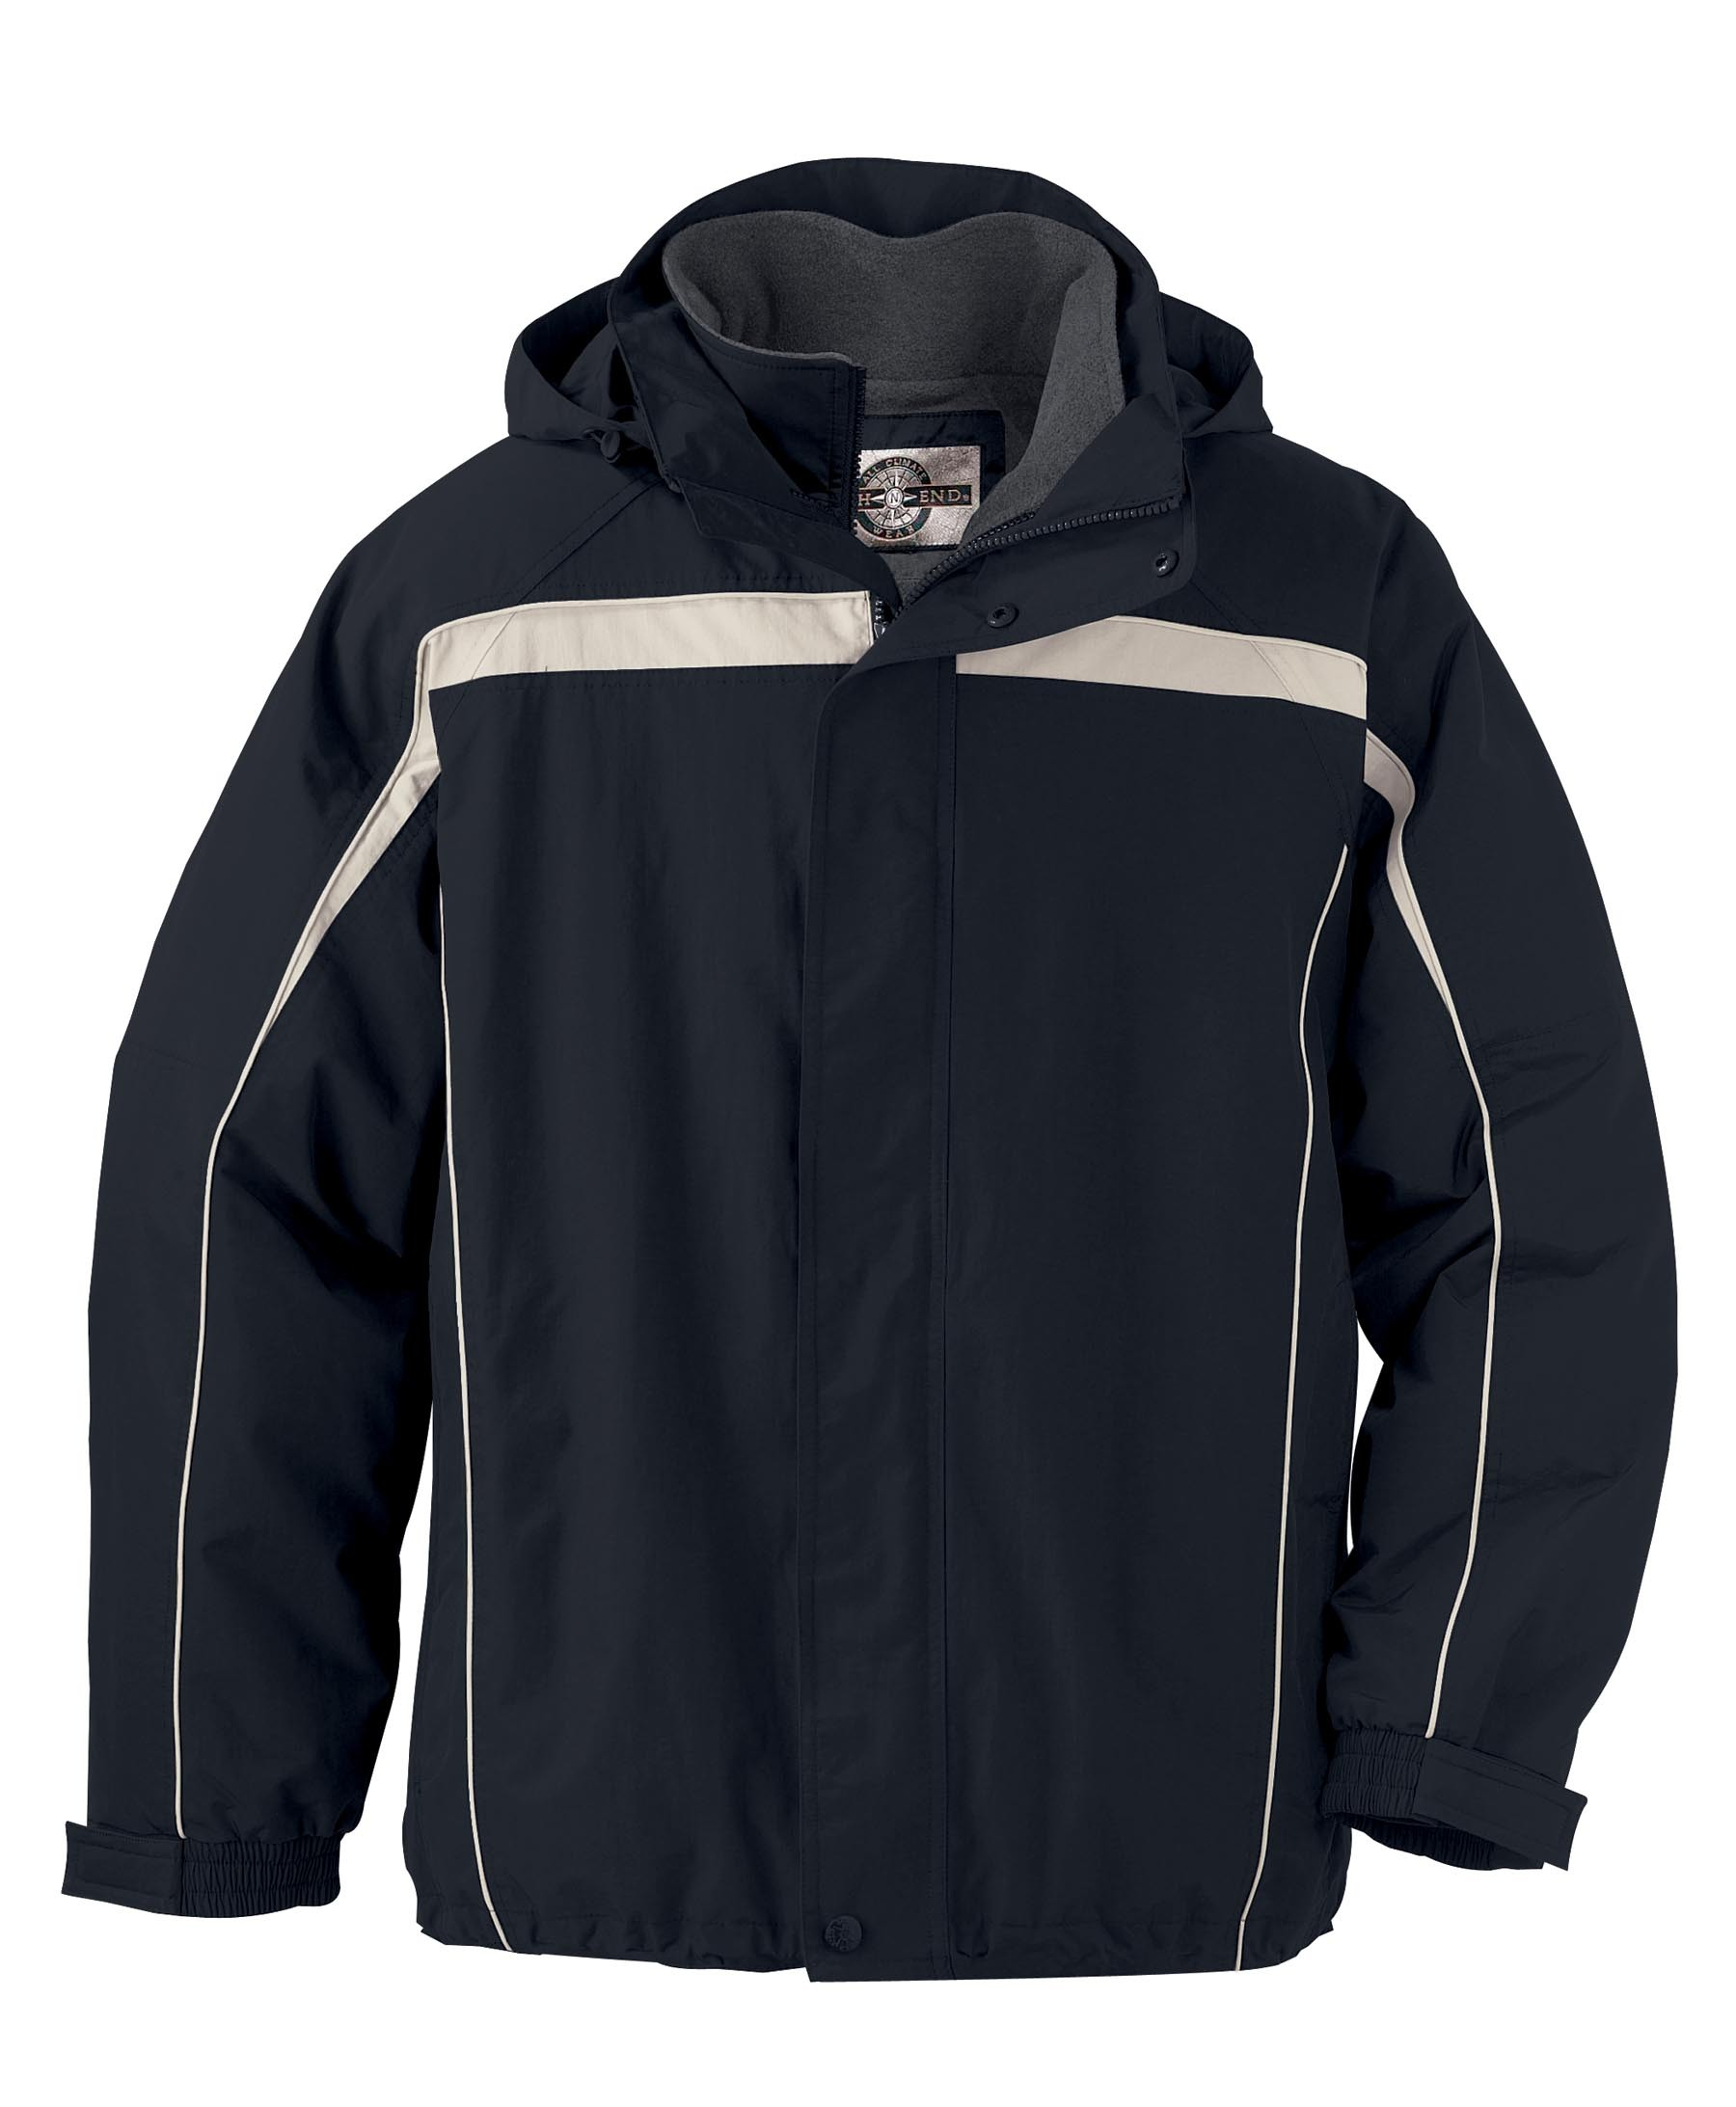 Ash City UTK 2 Warm.Logik 88079 - Men's 3-In-1 Jacket ...